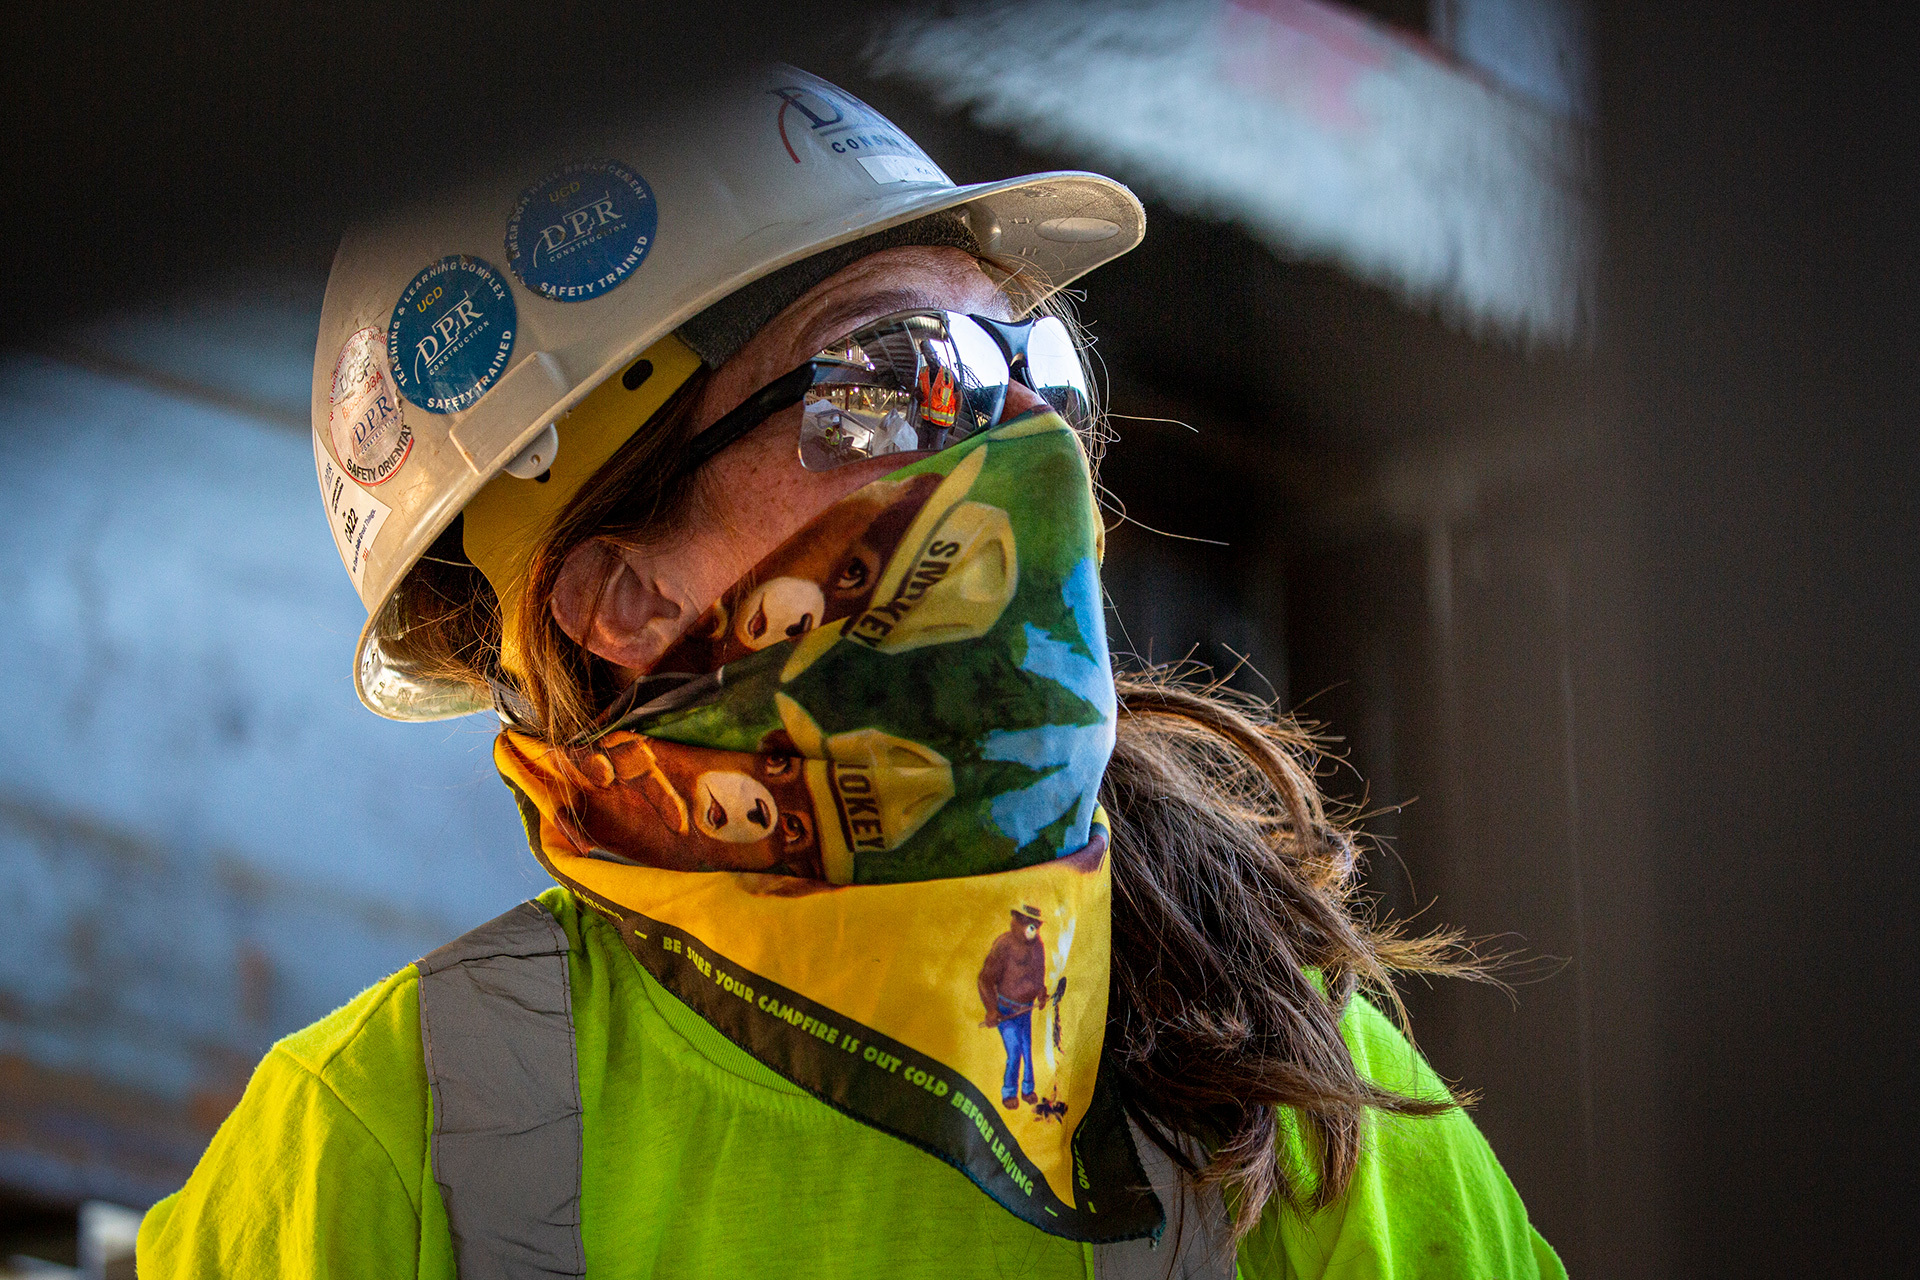 A construction worker wearing a face gator and hard hat